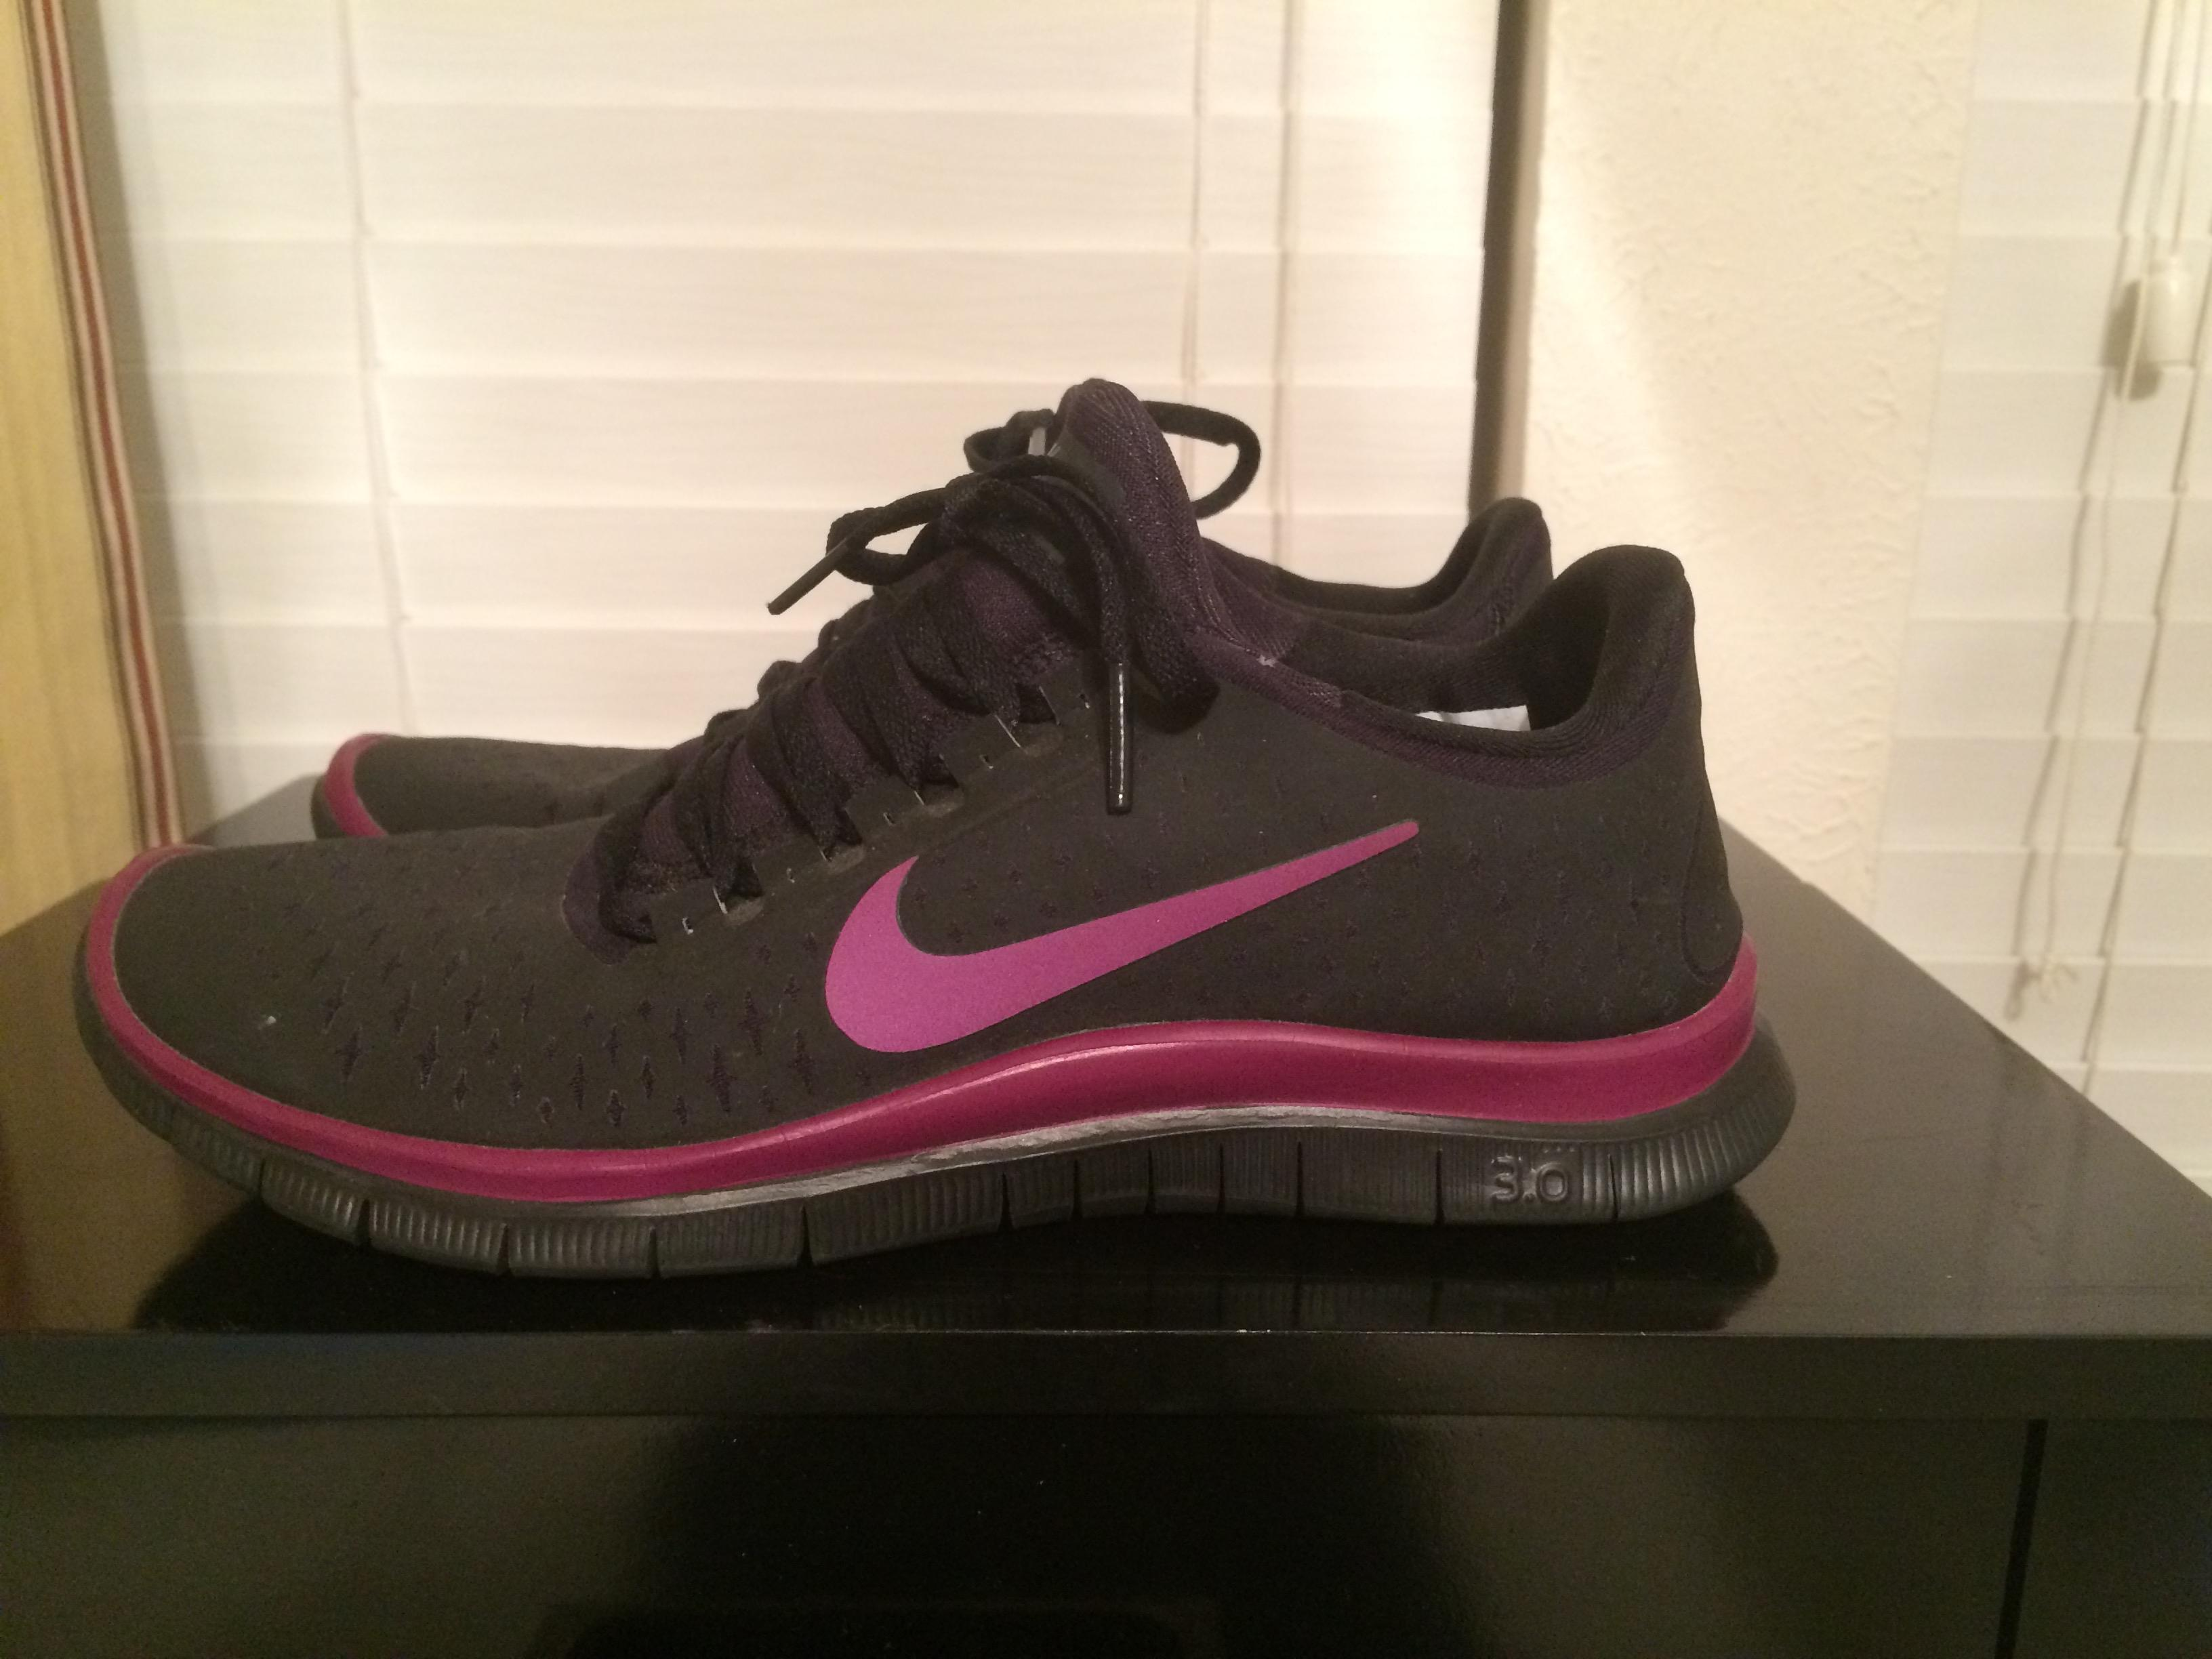 These; brand shoes 2b2fc 3fc98 Nike Black Purple Free Id 3.0 Running  Sneakers ...